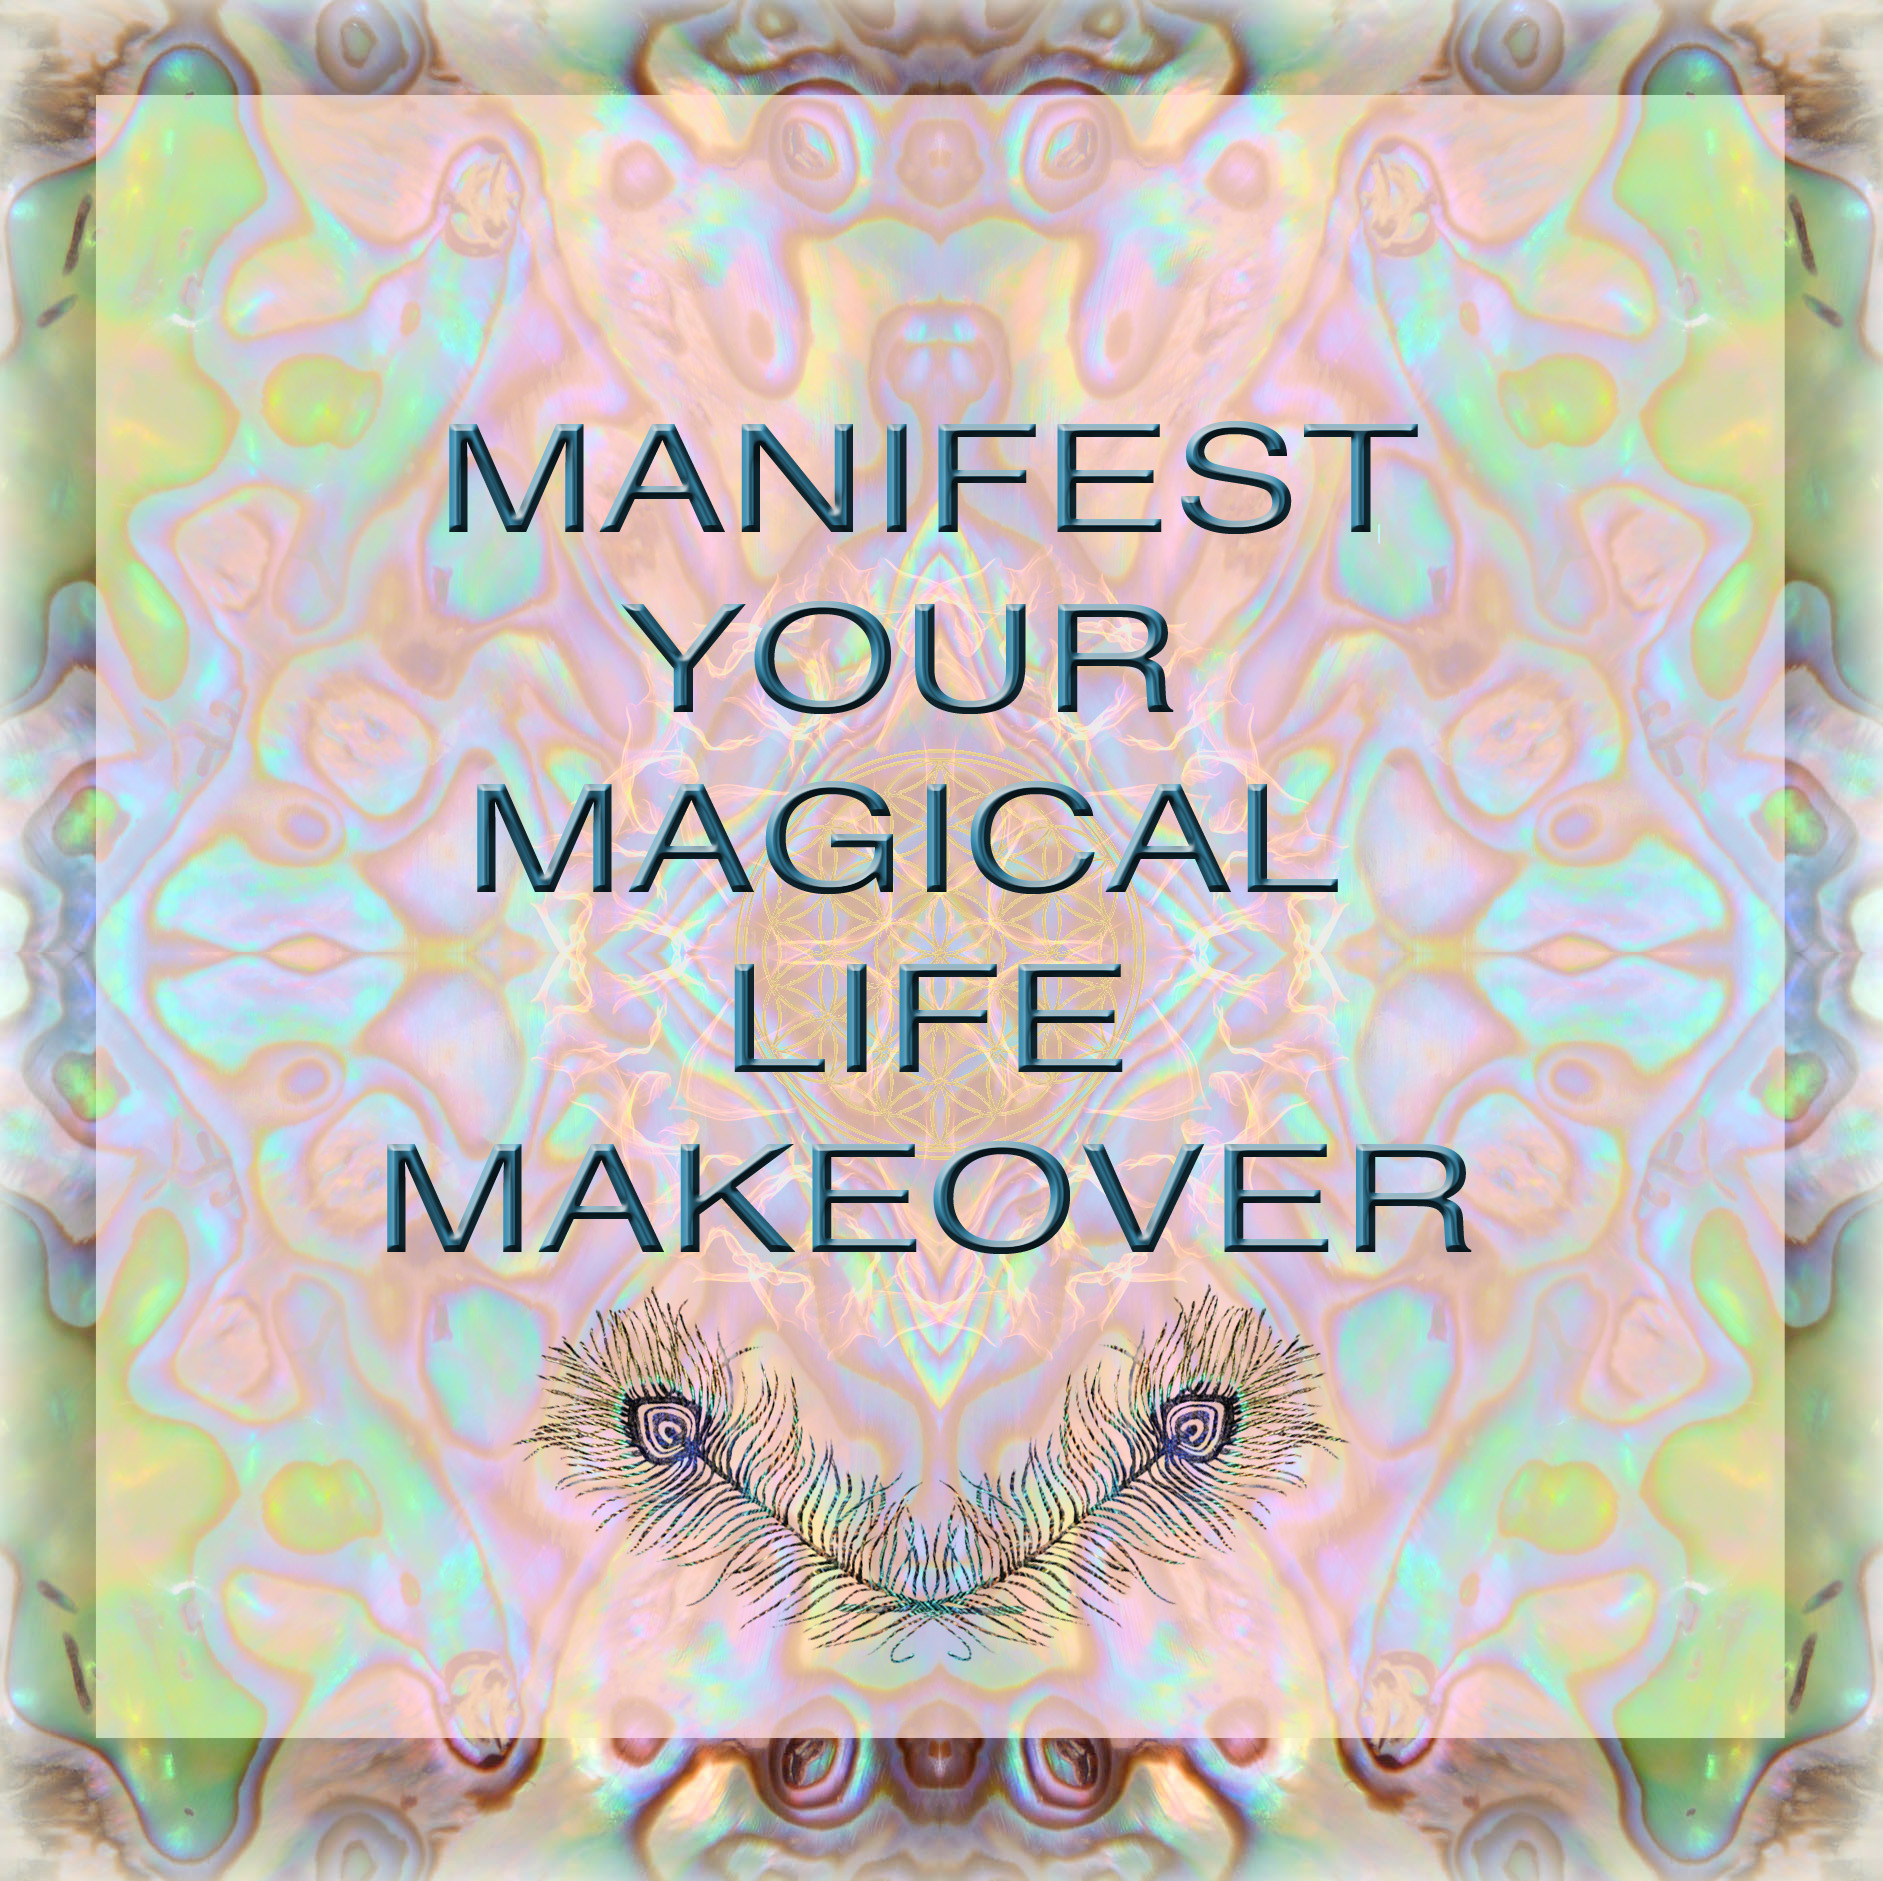 Manifest Your Magical Life Makeover